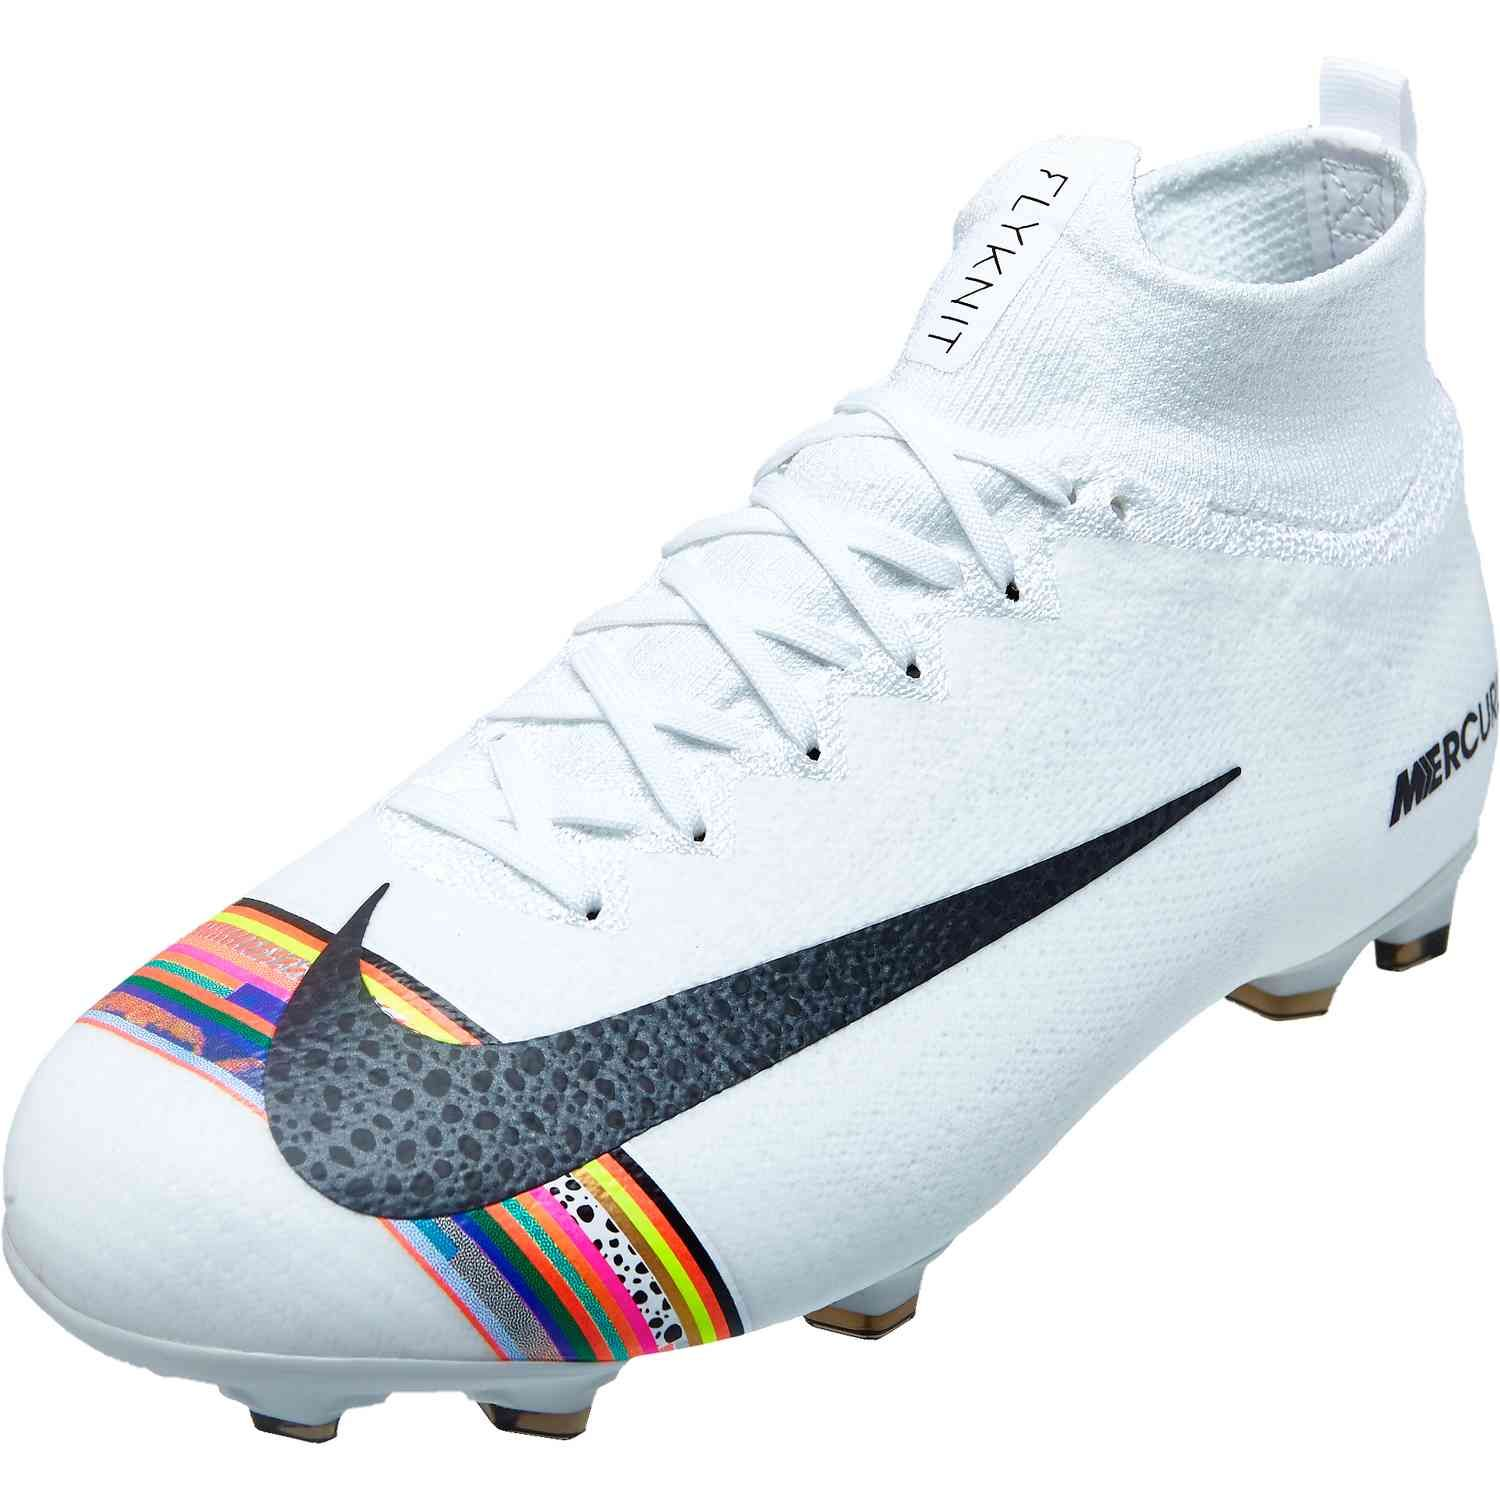 Kids Nike Mercurial Superfly 6 Elite Fg Level Up Soccerpro In 2020 Girls Soccer Cleats Soccer Shoes Kids Soccer Shoes